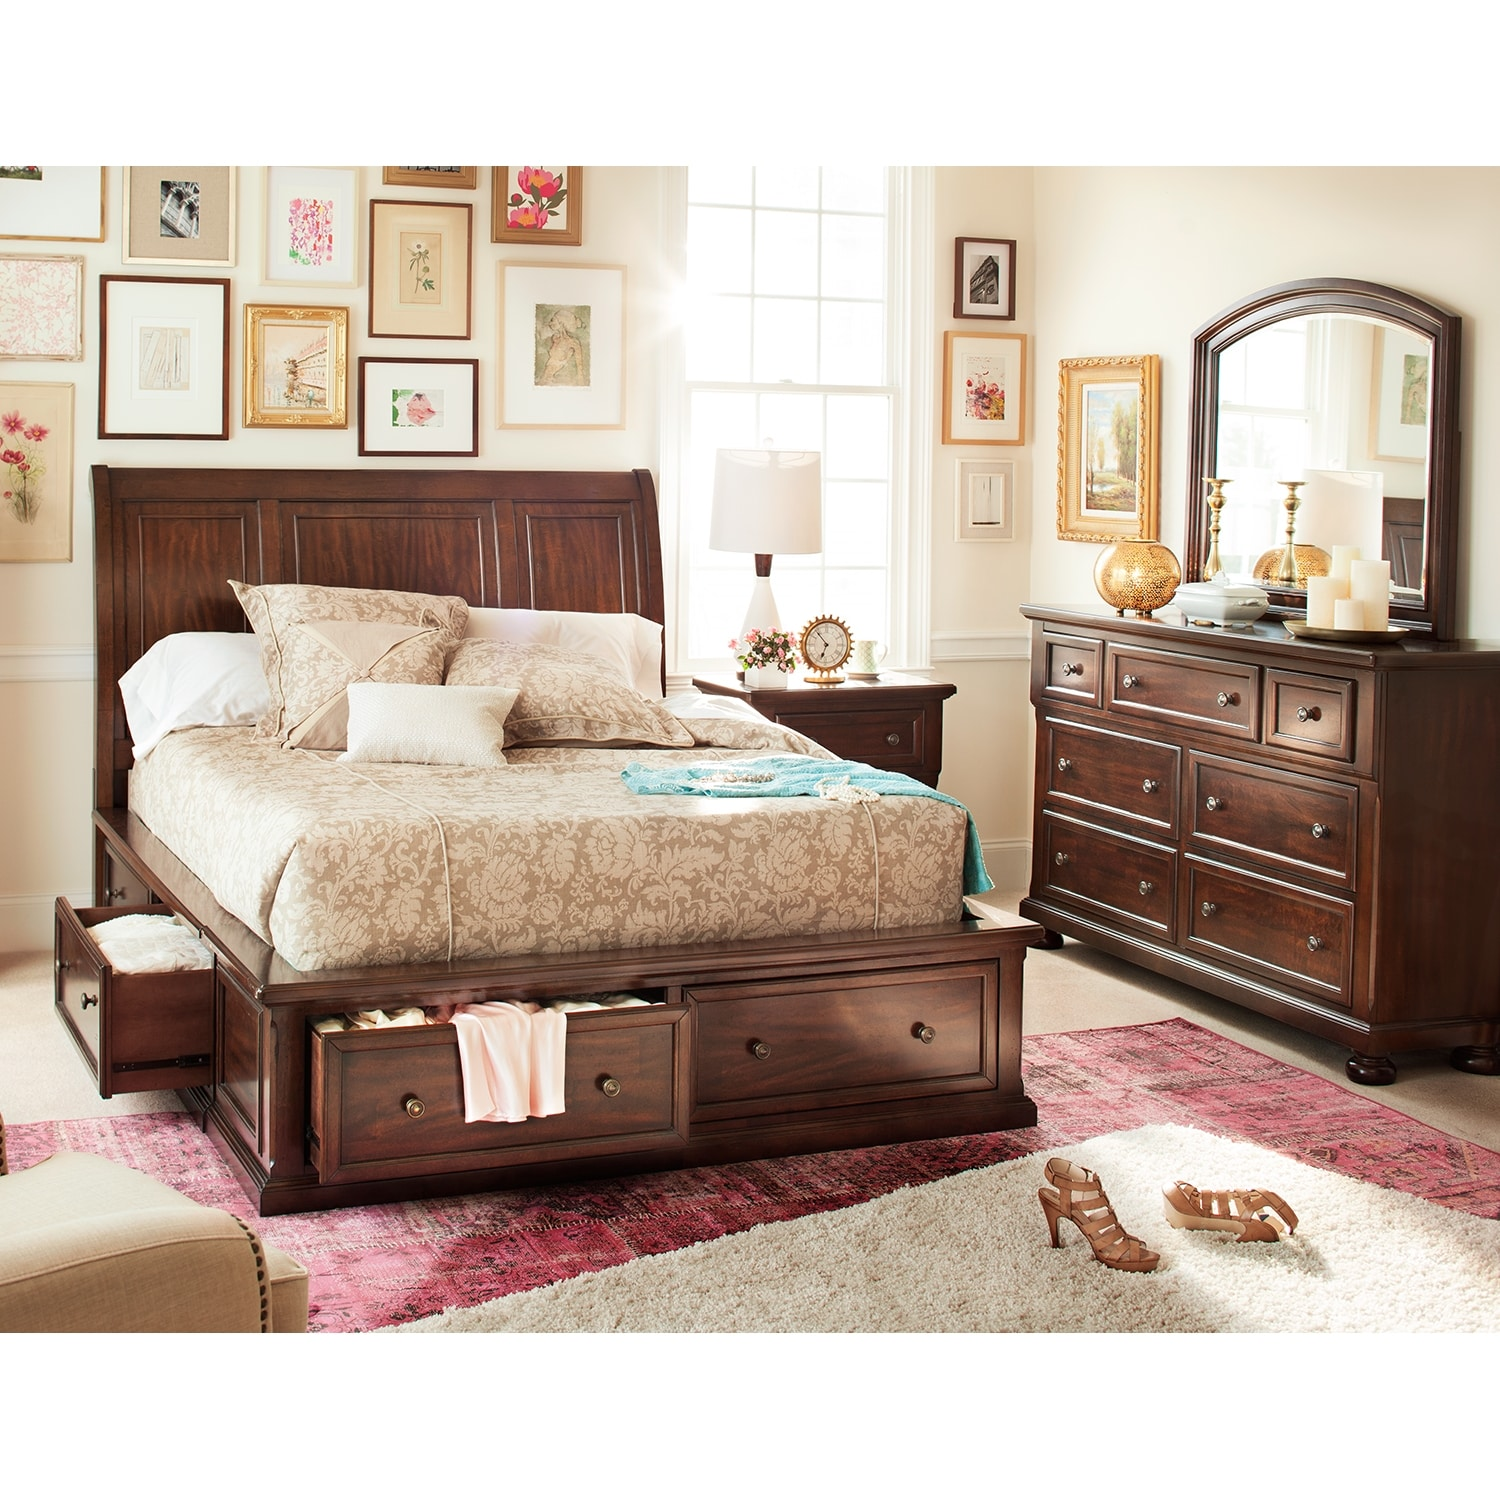 Hanover 5 Pc King Storage Bedroom American Signature